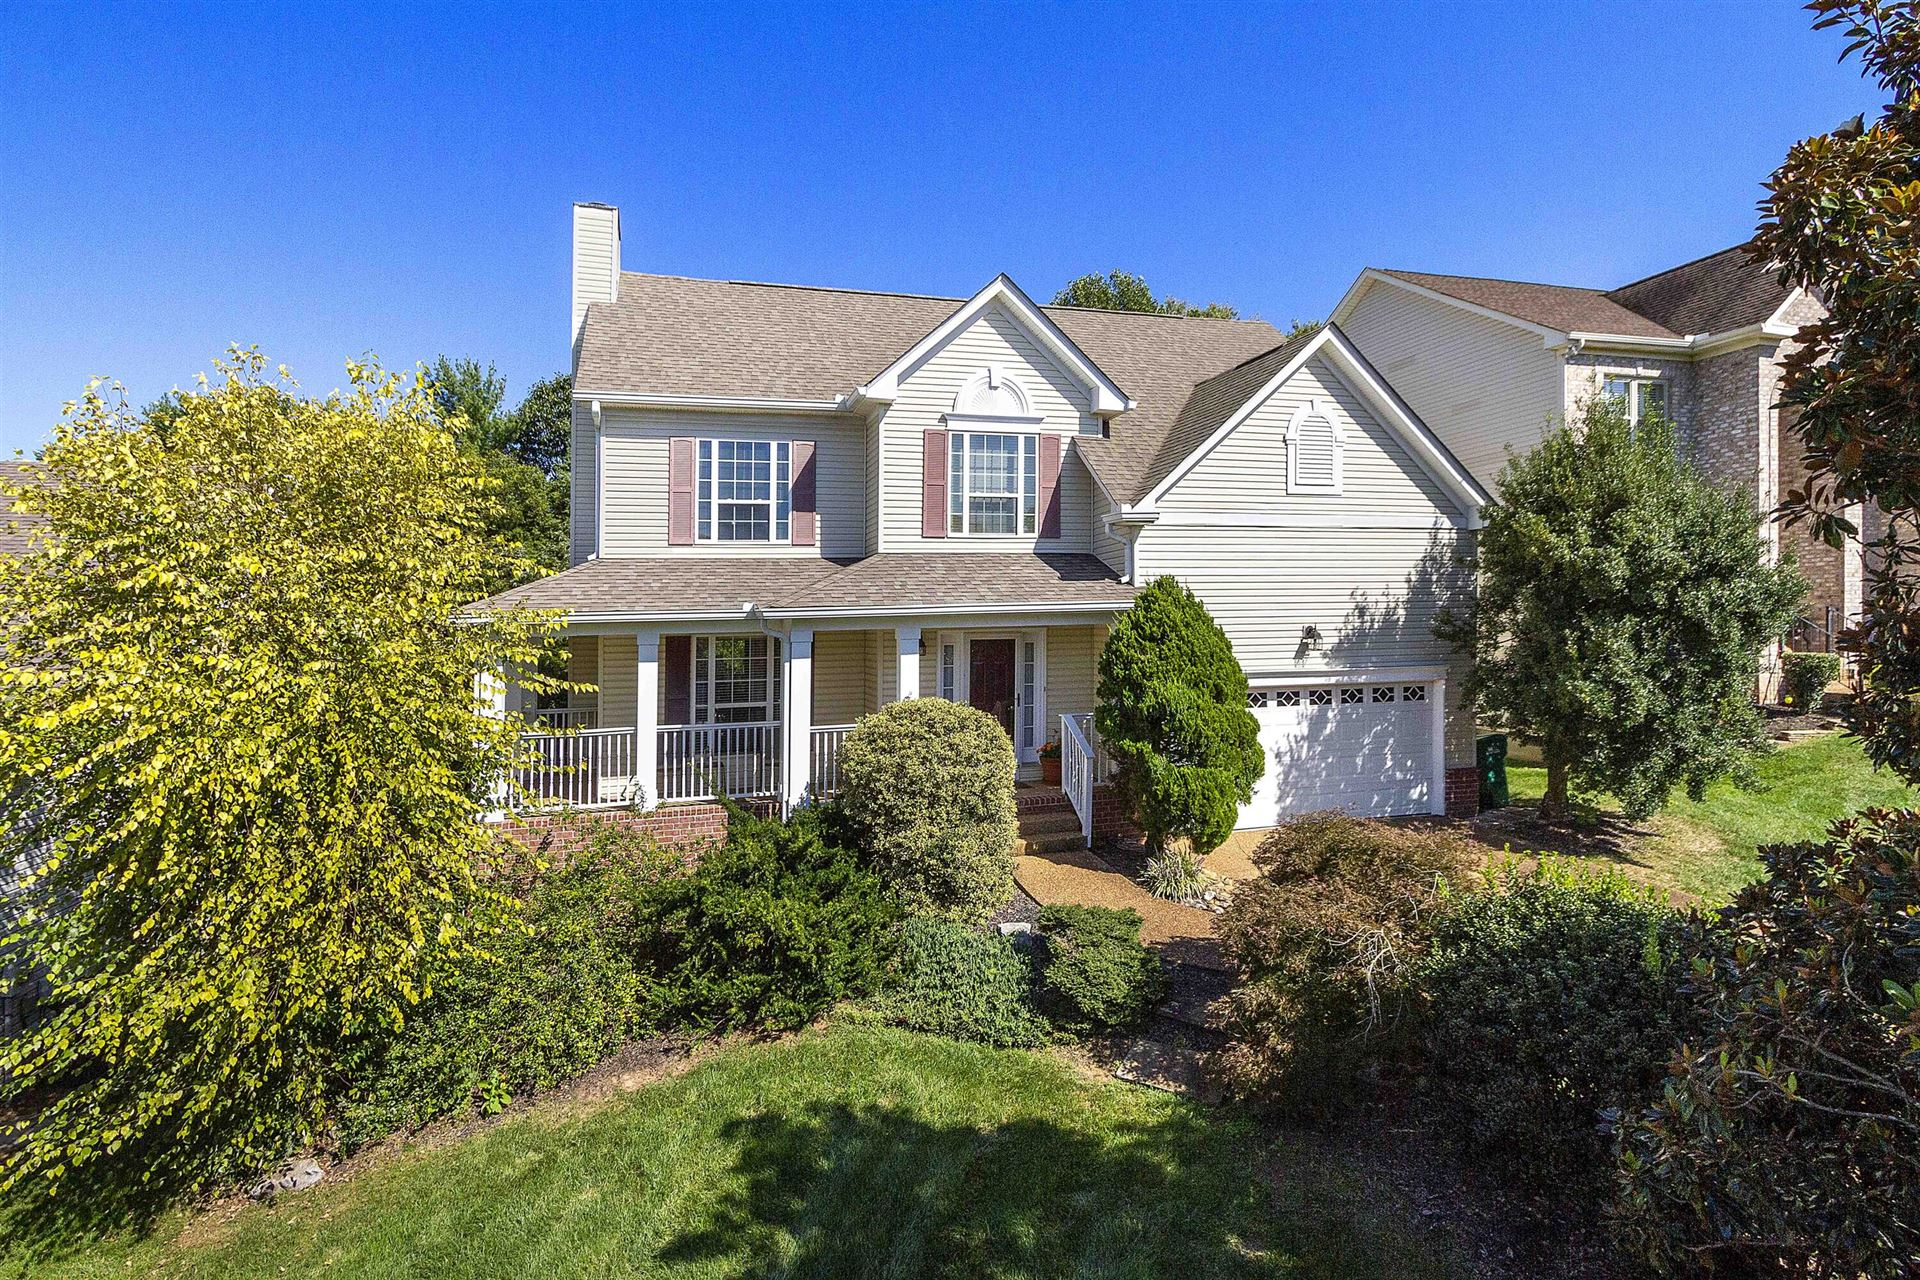 Photo of 1152 Vale View Rd, Knoxville, TN 37922 (MLS # 1167814)